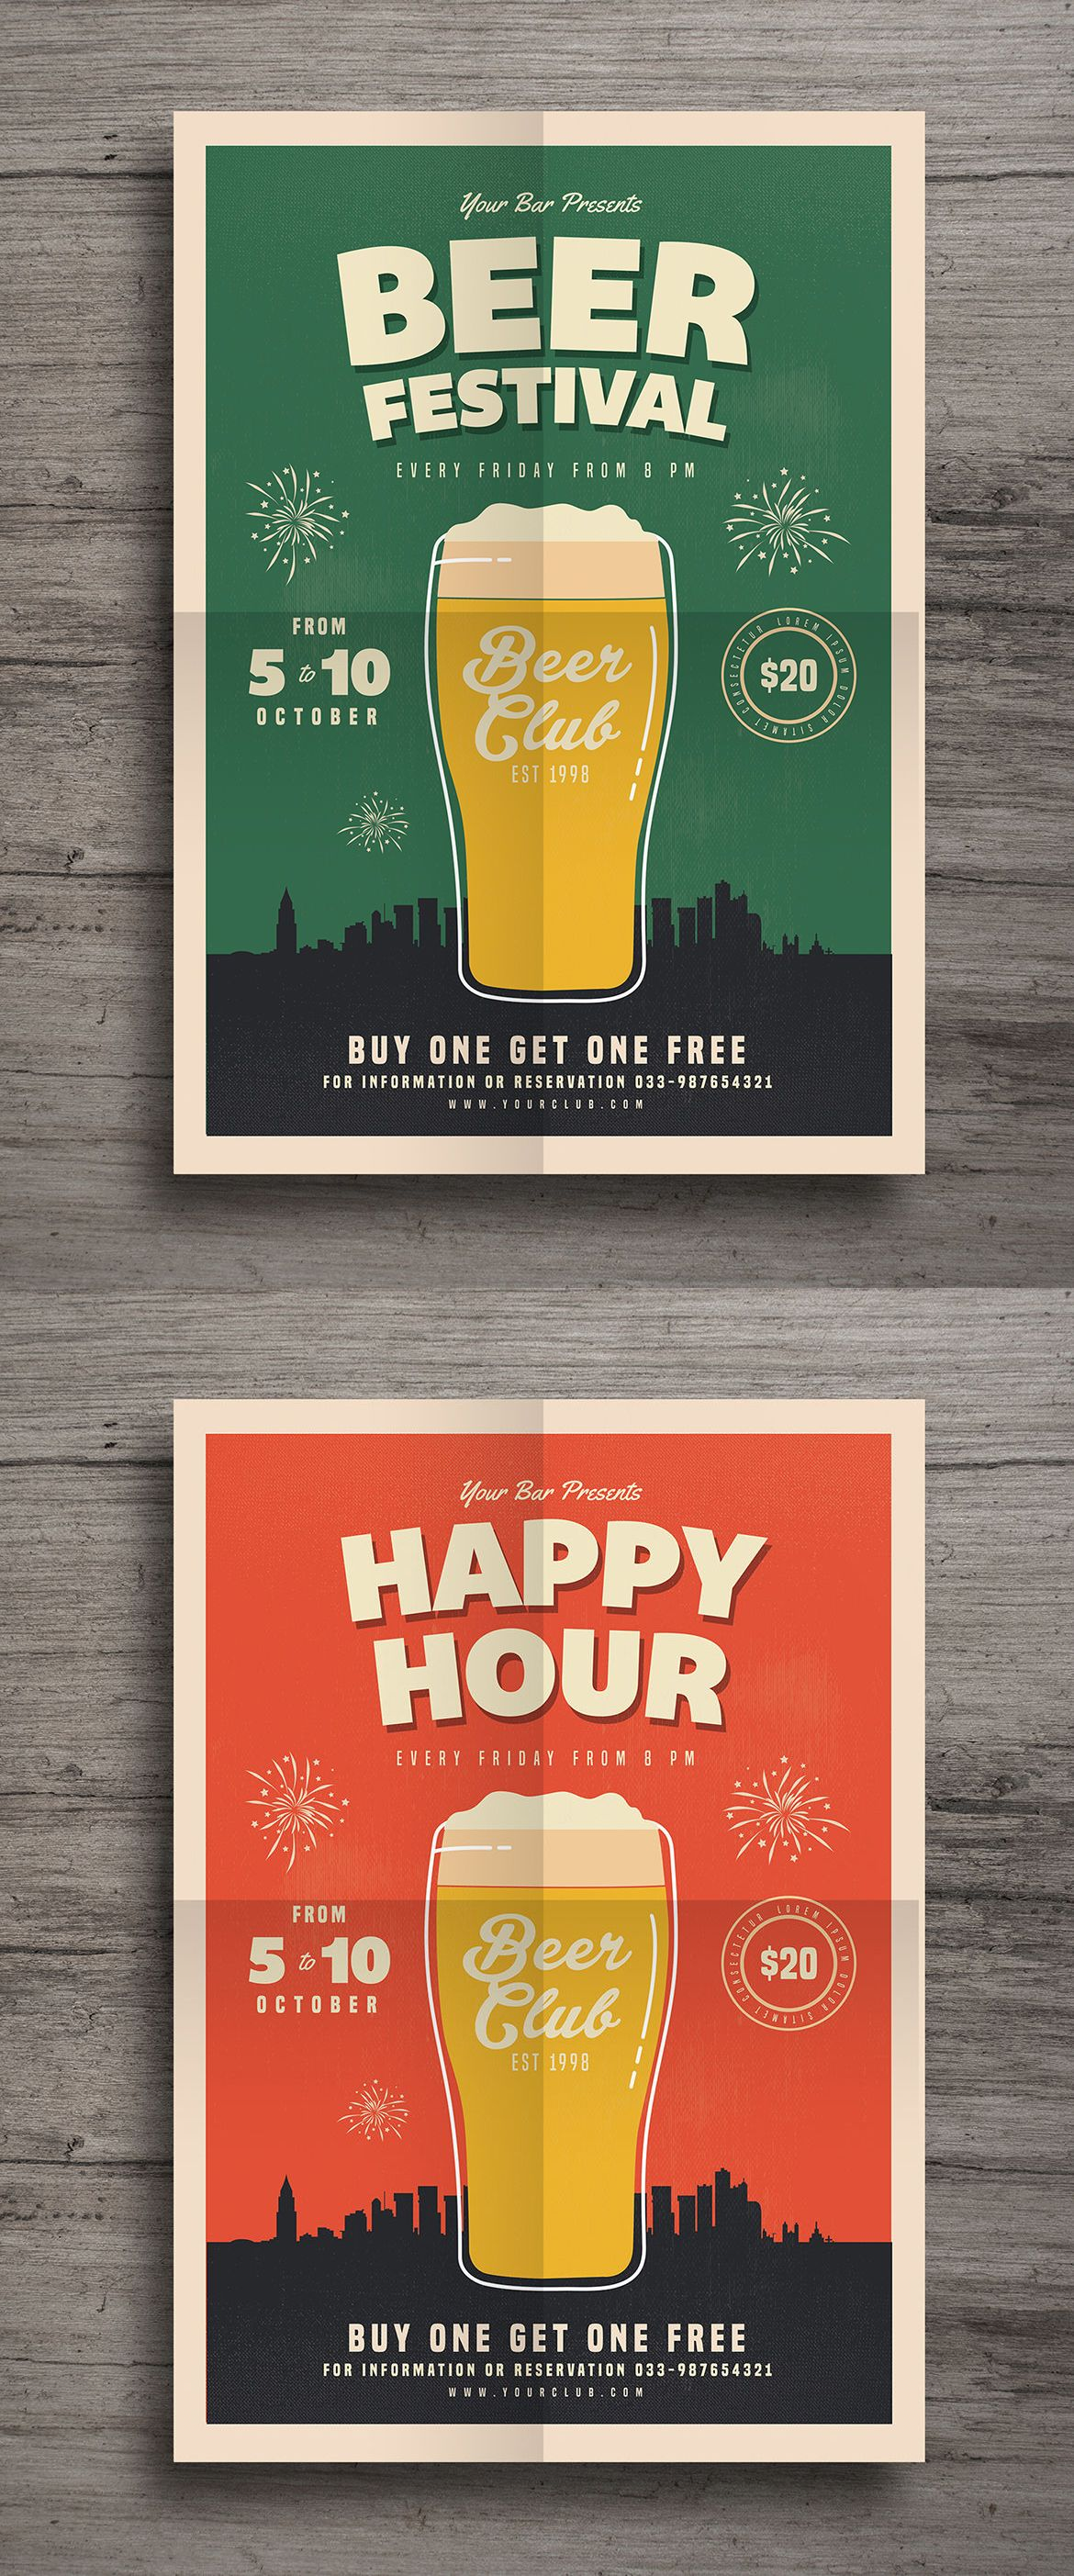 Happy Hour Beer Festival Flyer Template Ai Psd Happy Hour Beer Beer Festival Poster Beer Festival